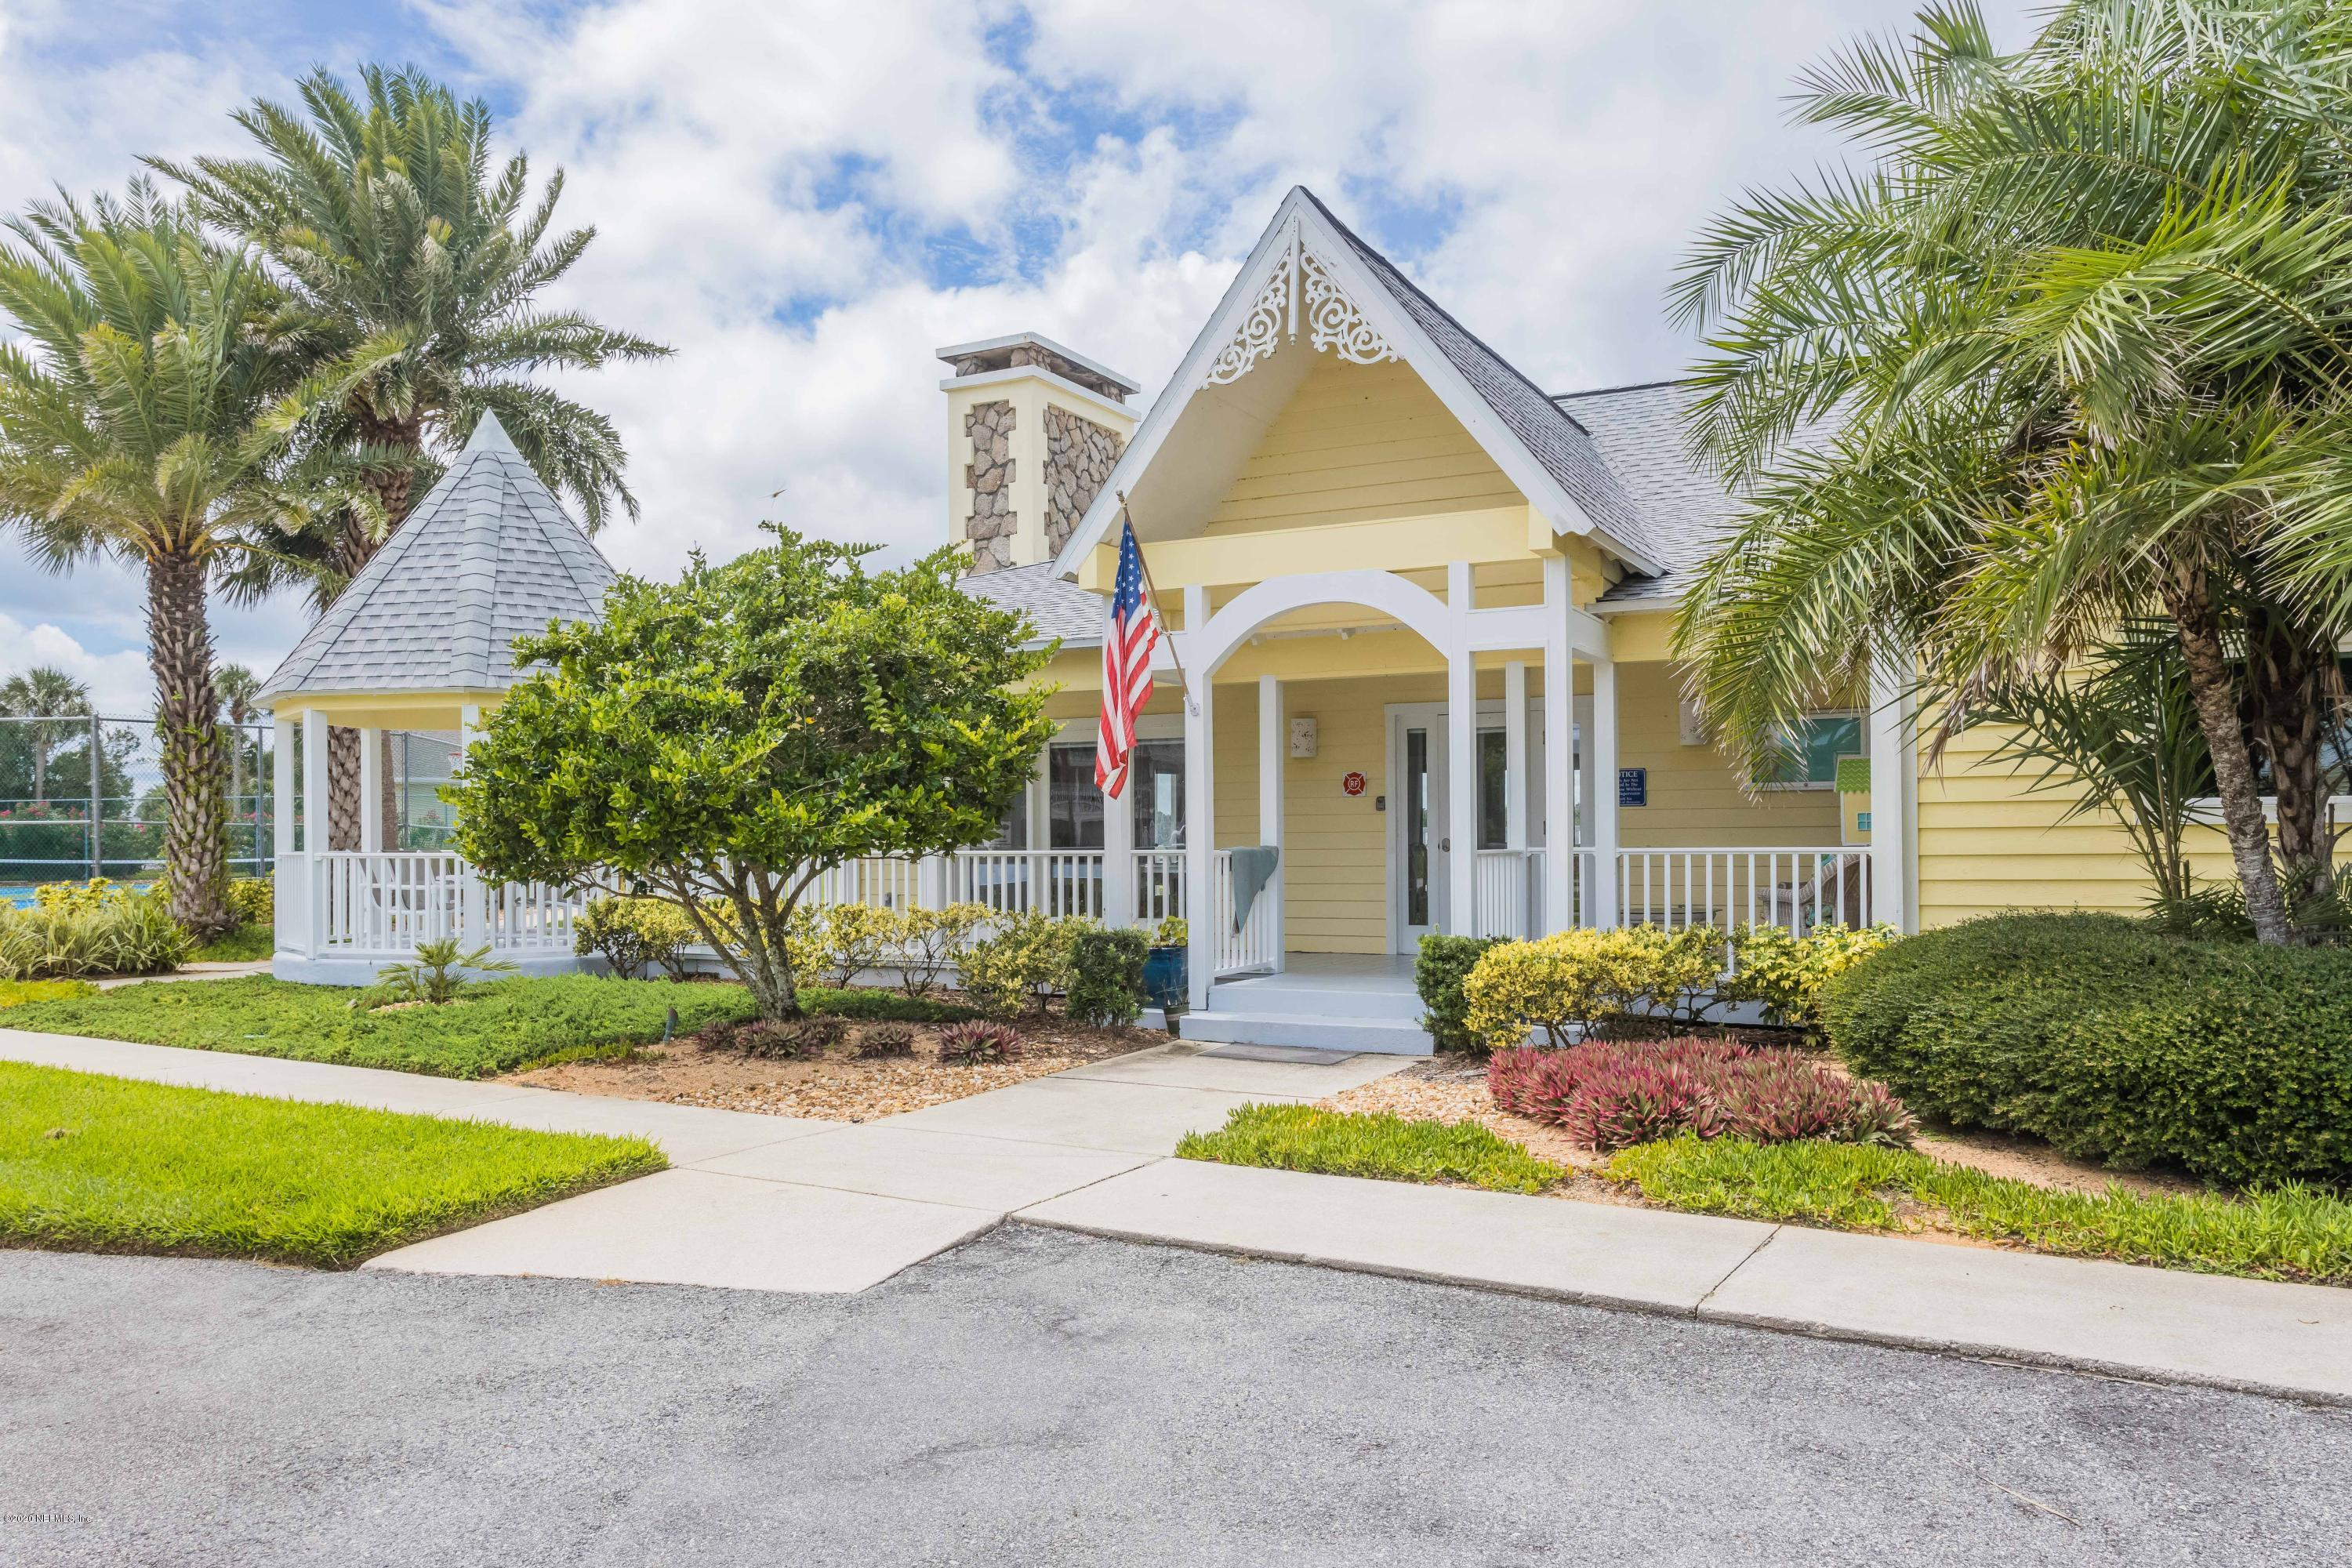 9189 AUGUST, ST AUGUSTINE, FLORIDA 32080, 3 Bedrooms Bedrooms, ,2 BathroomsBathrooms,Residential,For sale,AUGUST,1082917